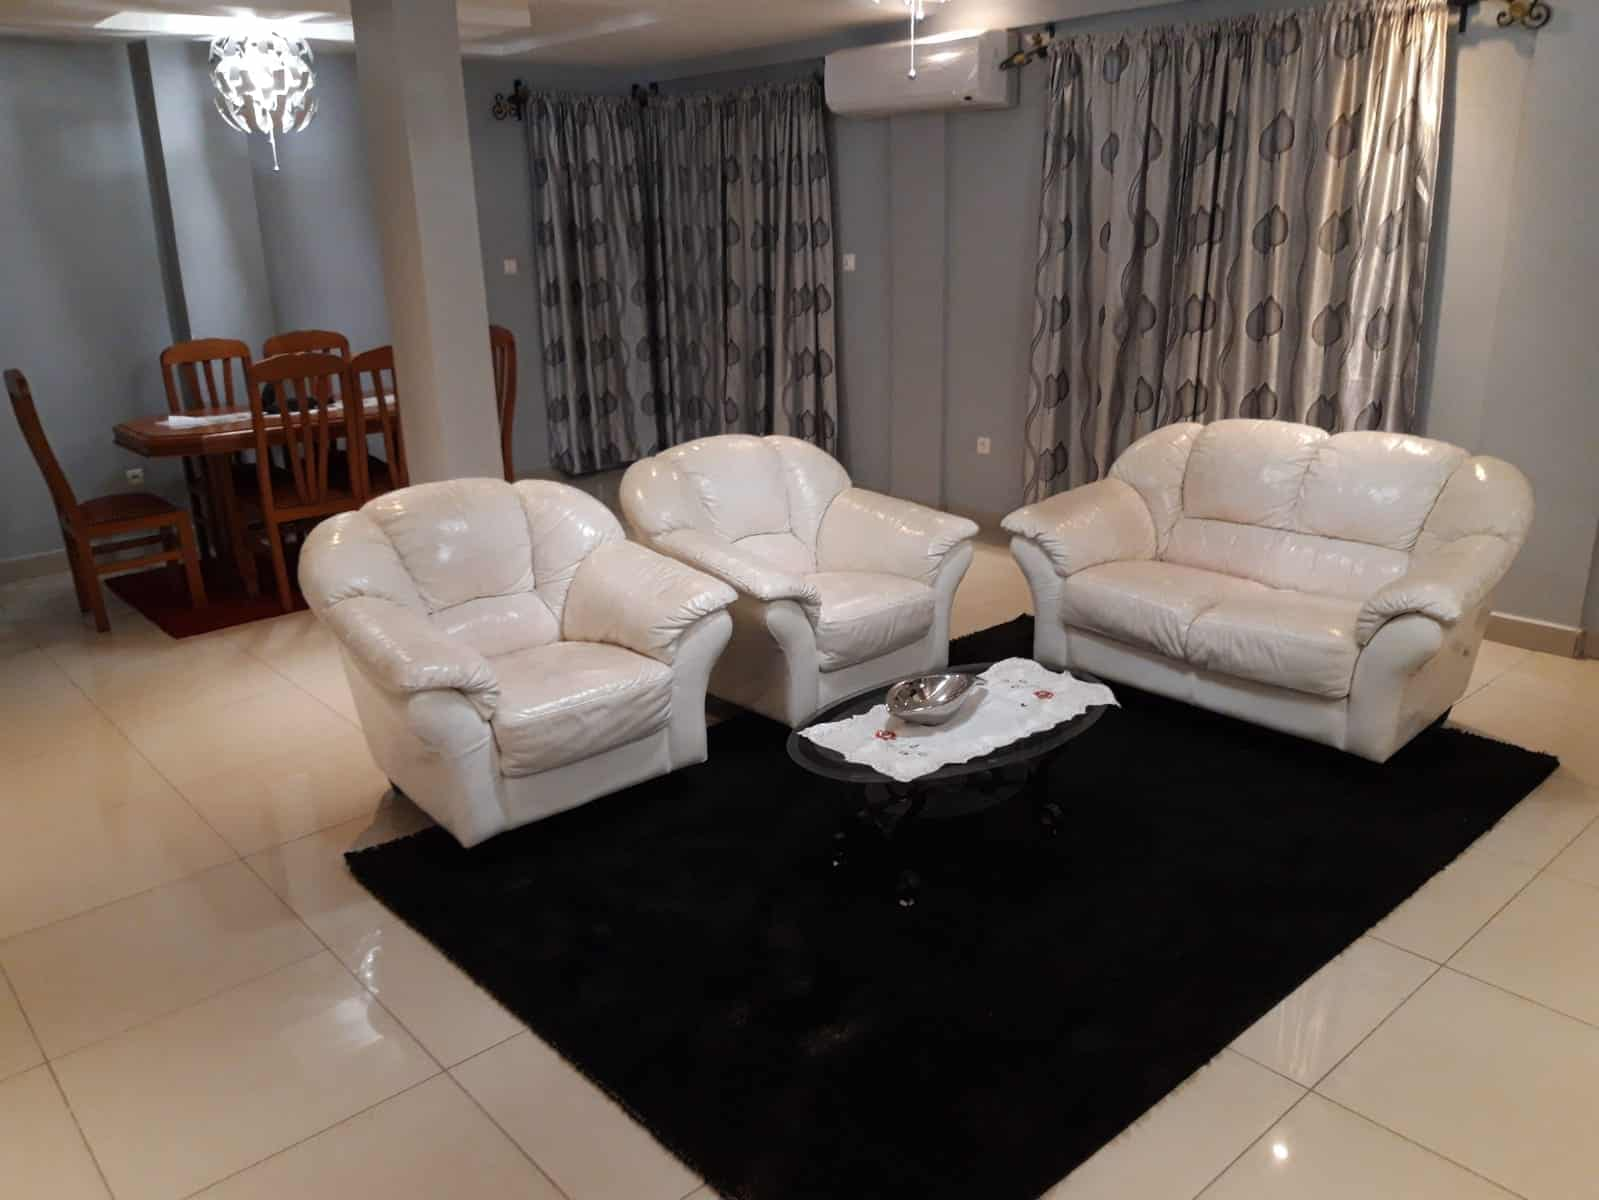 Apartment to rent - Douala, Logpom, Station Tradex - 1 living room(s), 3 bedroom(s), 2 bathroom(s) - 55 000 FCFA / month